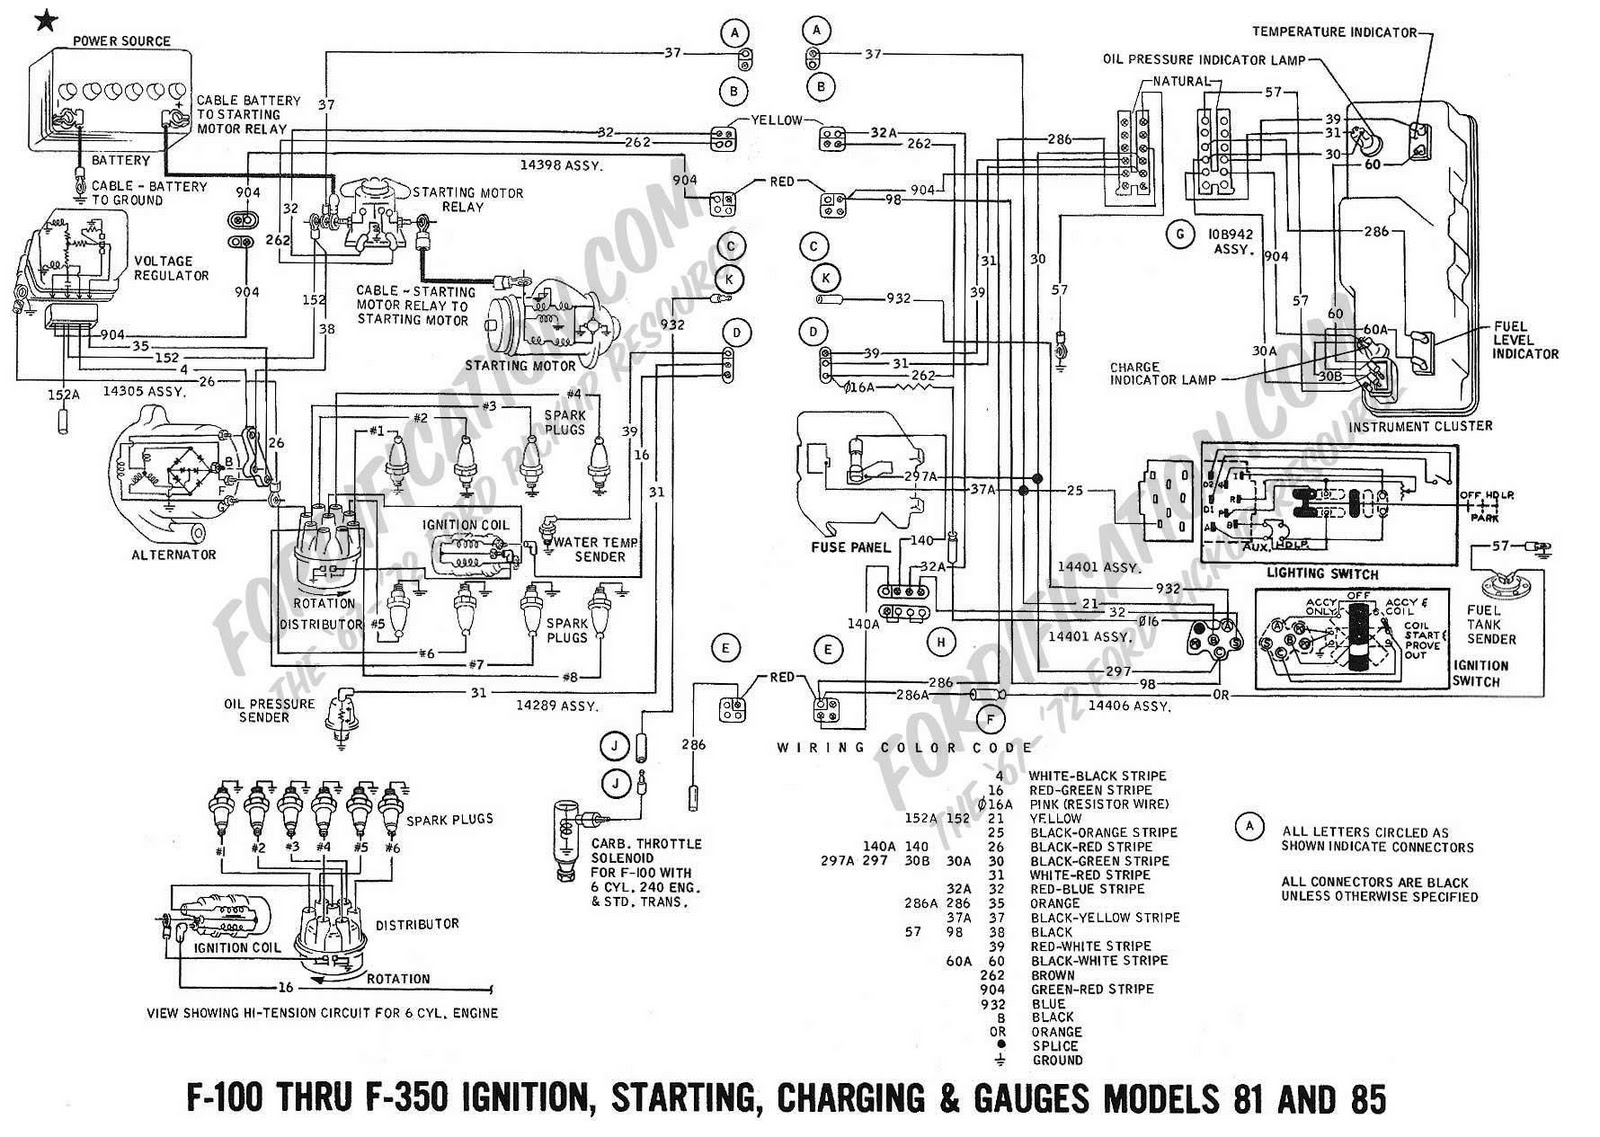 medium resolution of 1970 ford f100 wiring harness simple wiring diagram 1957 pontiac wiring diagram 1962 ford radio wiring diagram